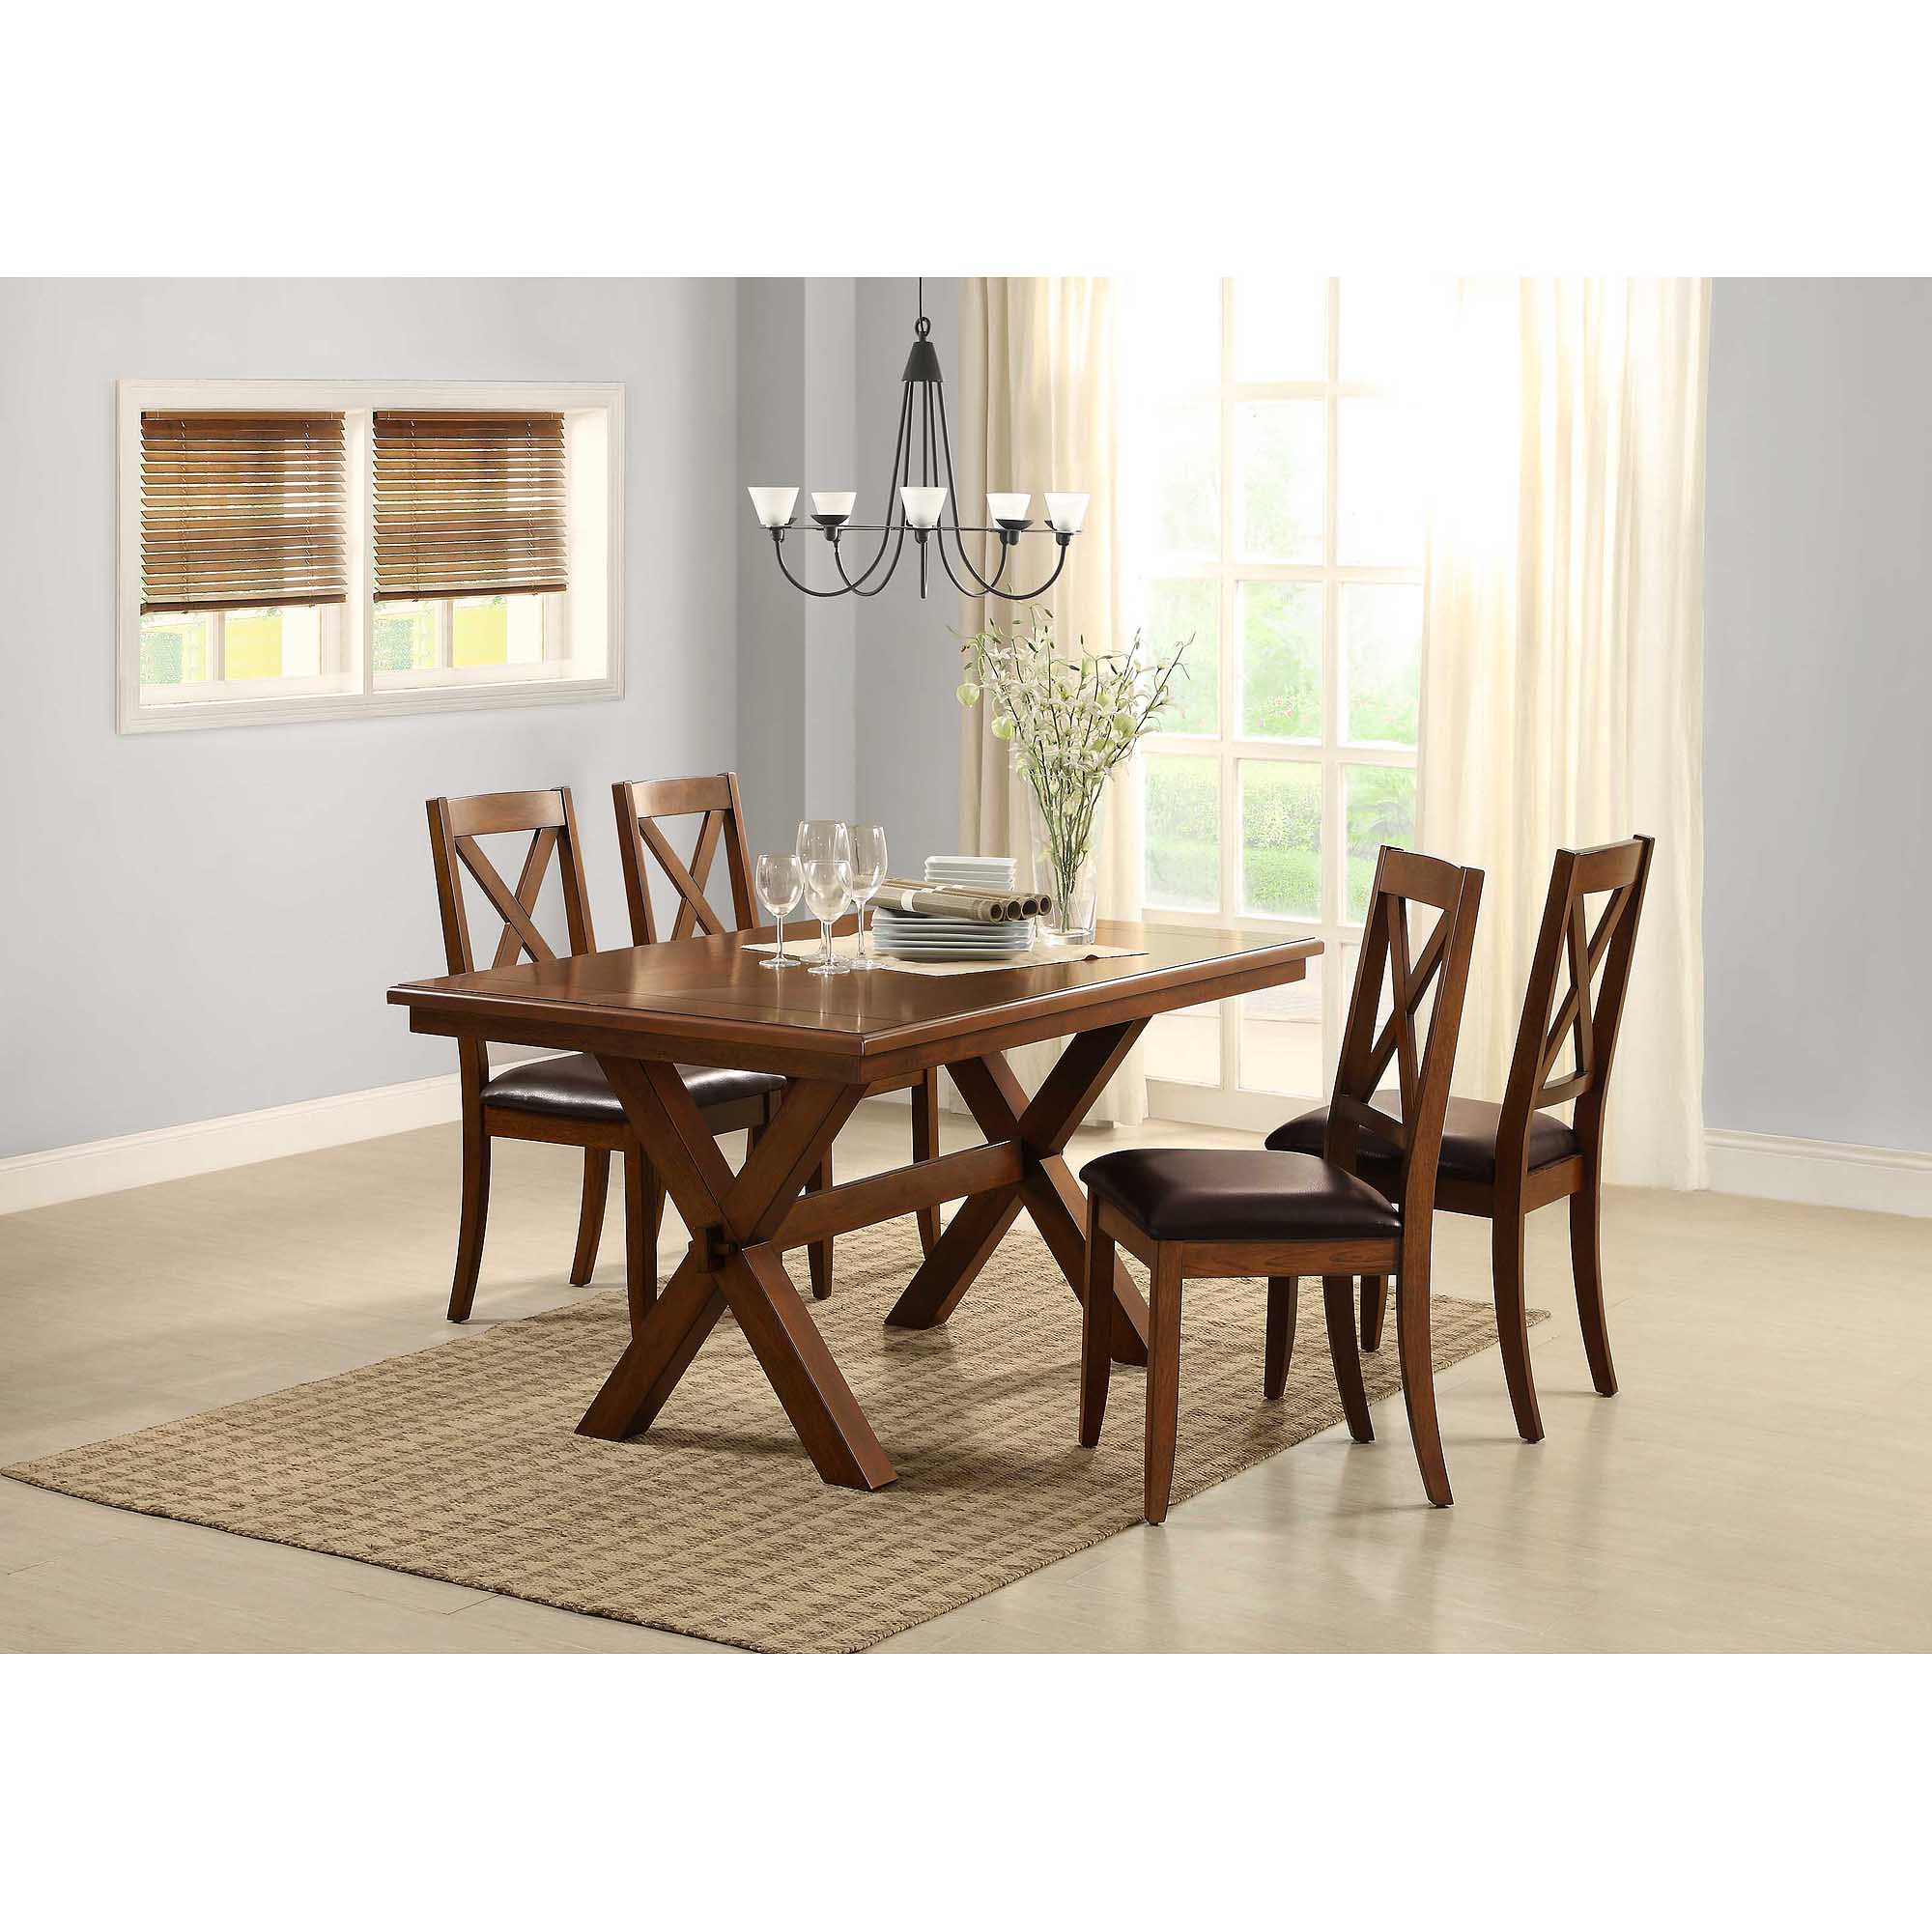 better homes gardens maddox crossing dining table brown walmartcom - Walmart Kitchen Tables